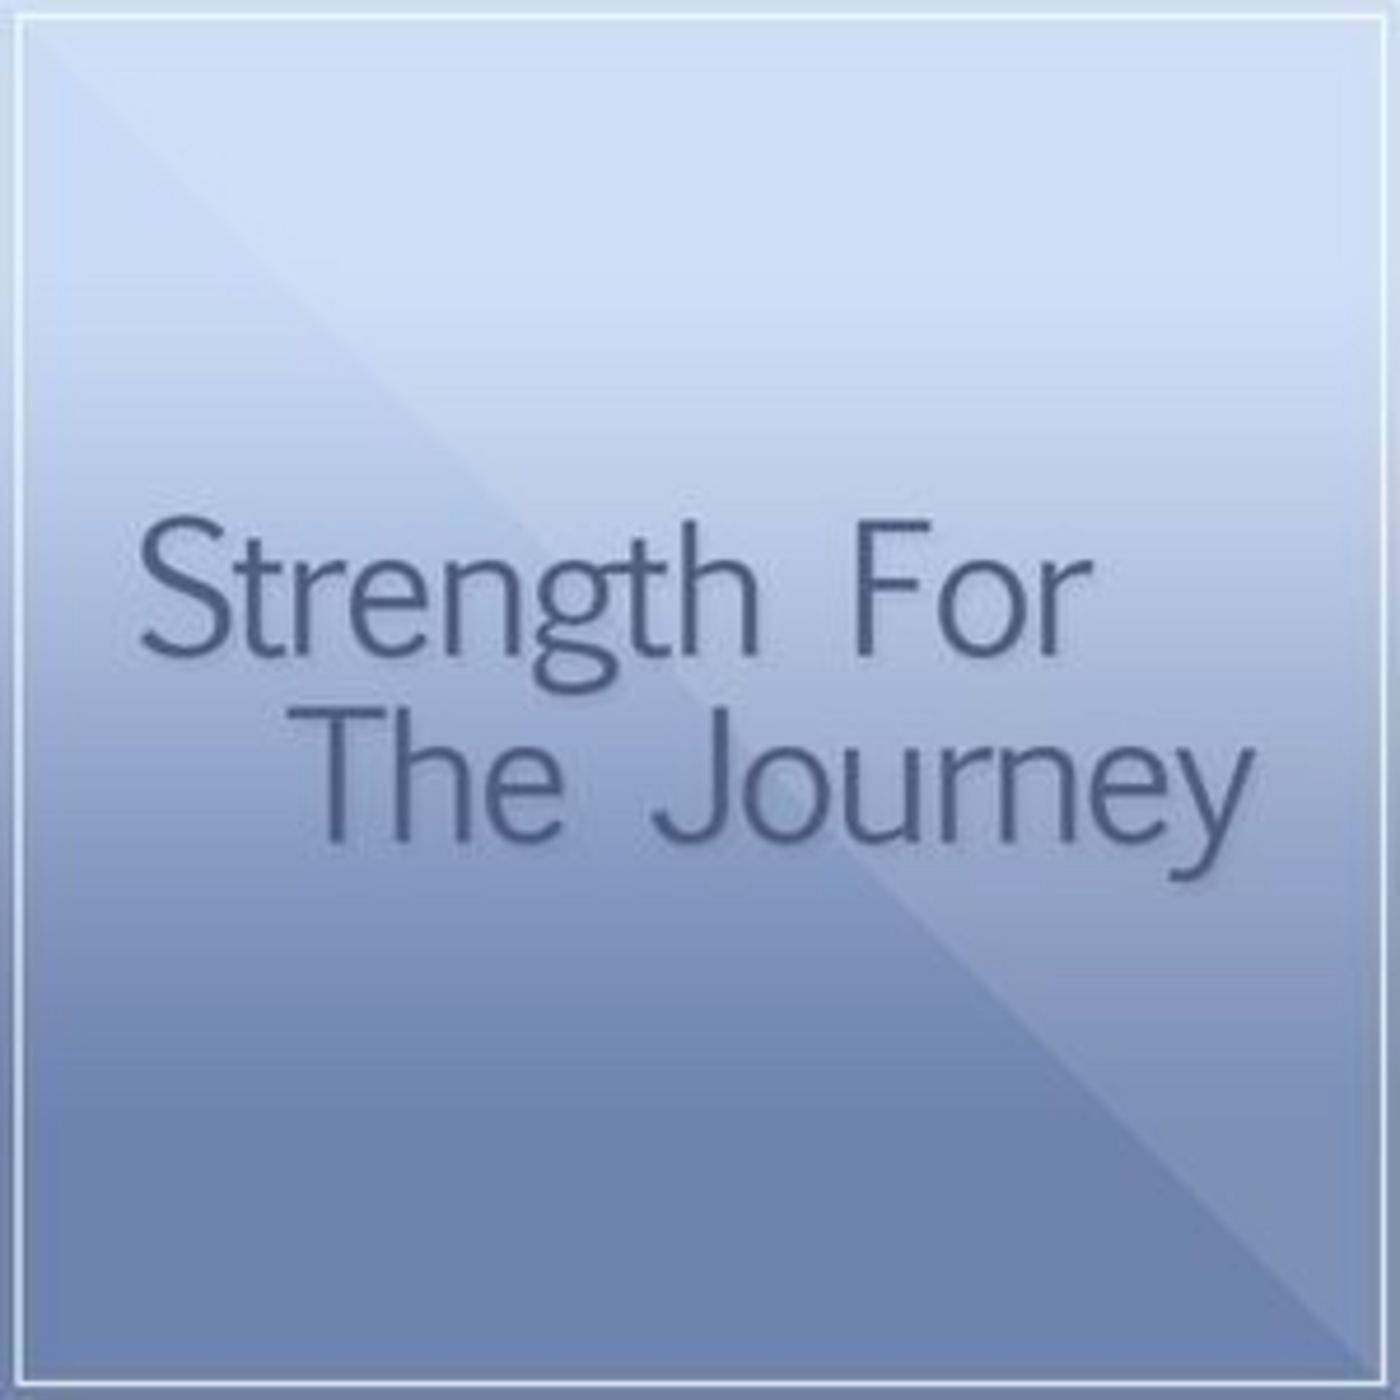 <![CDATA[Strength For The Journey]]>